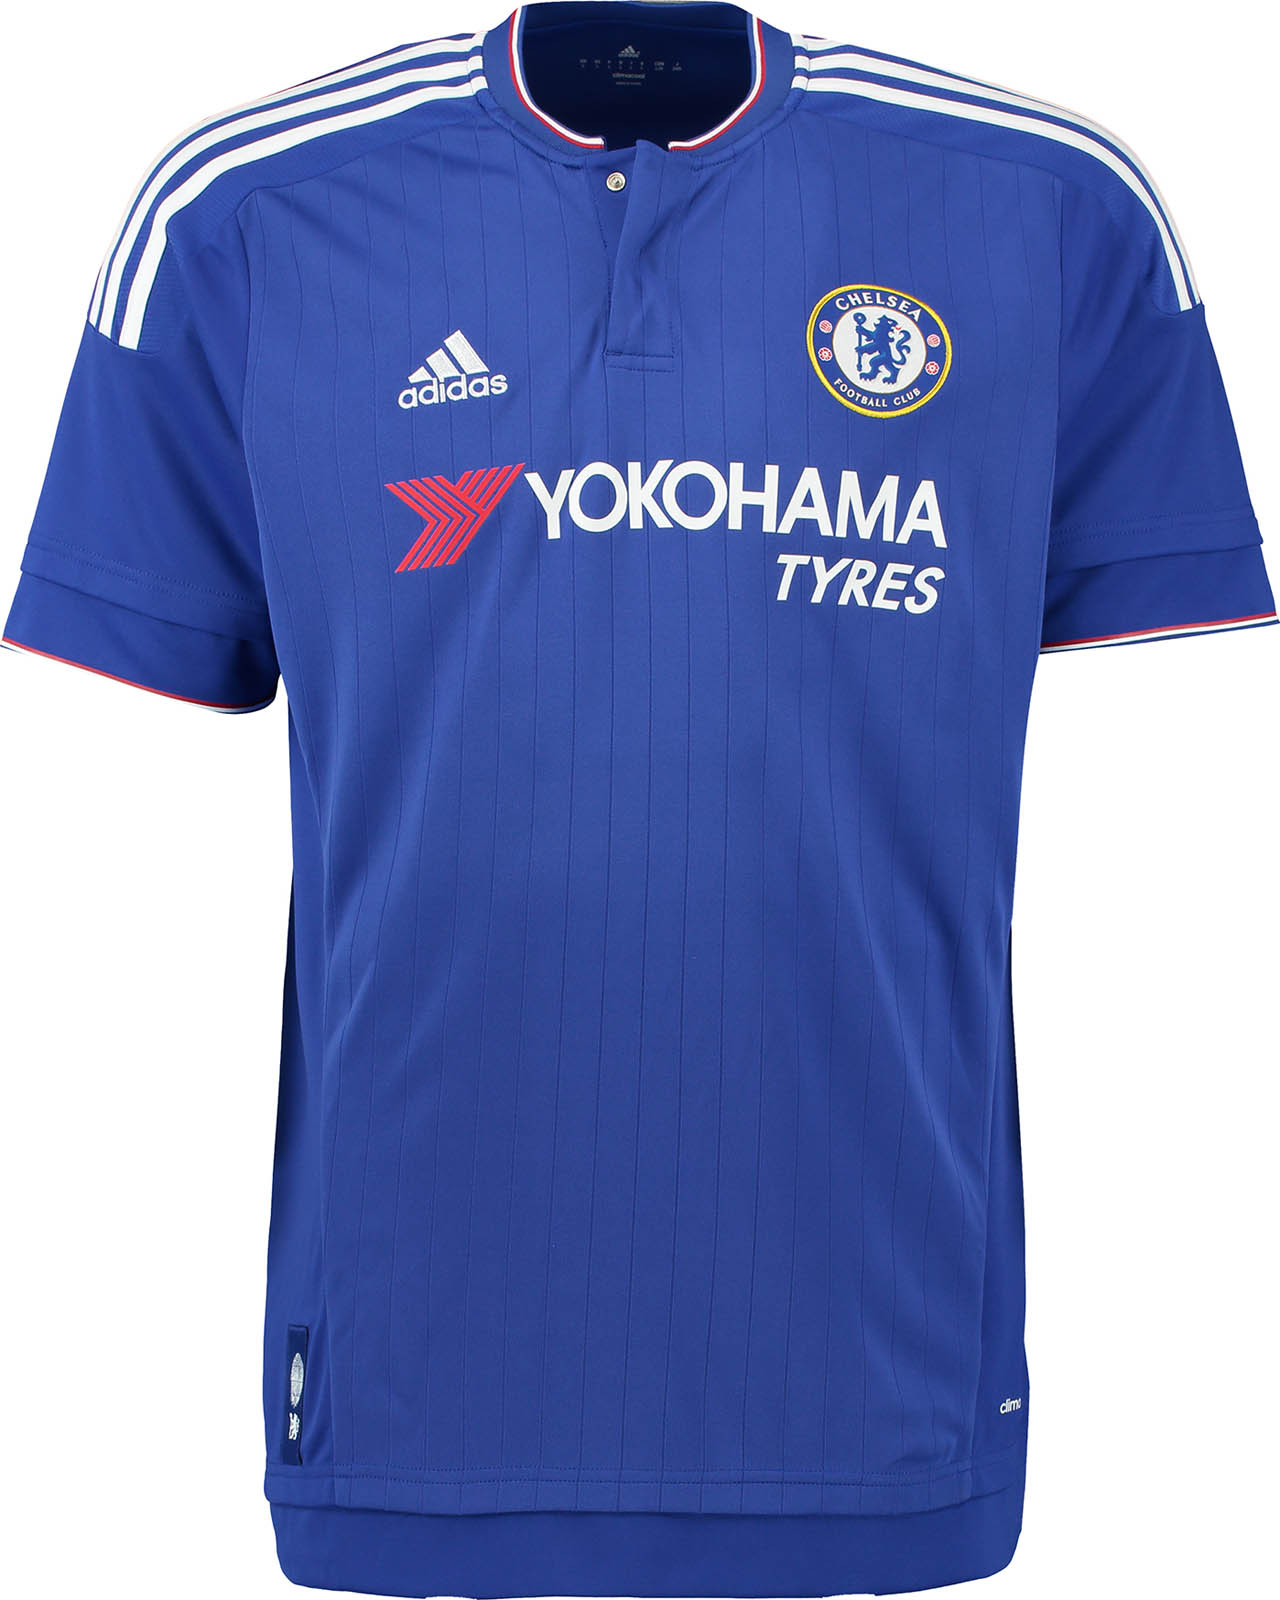 chelsea 15 16 kits revealed   footy headlines